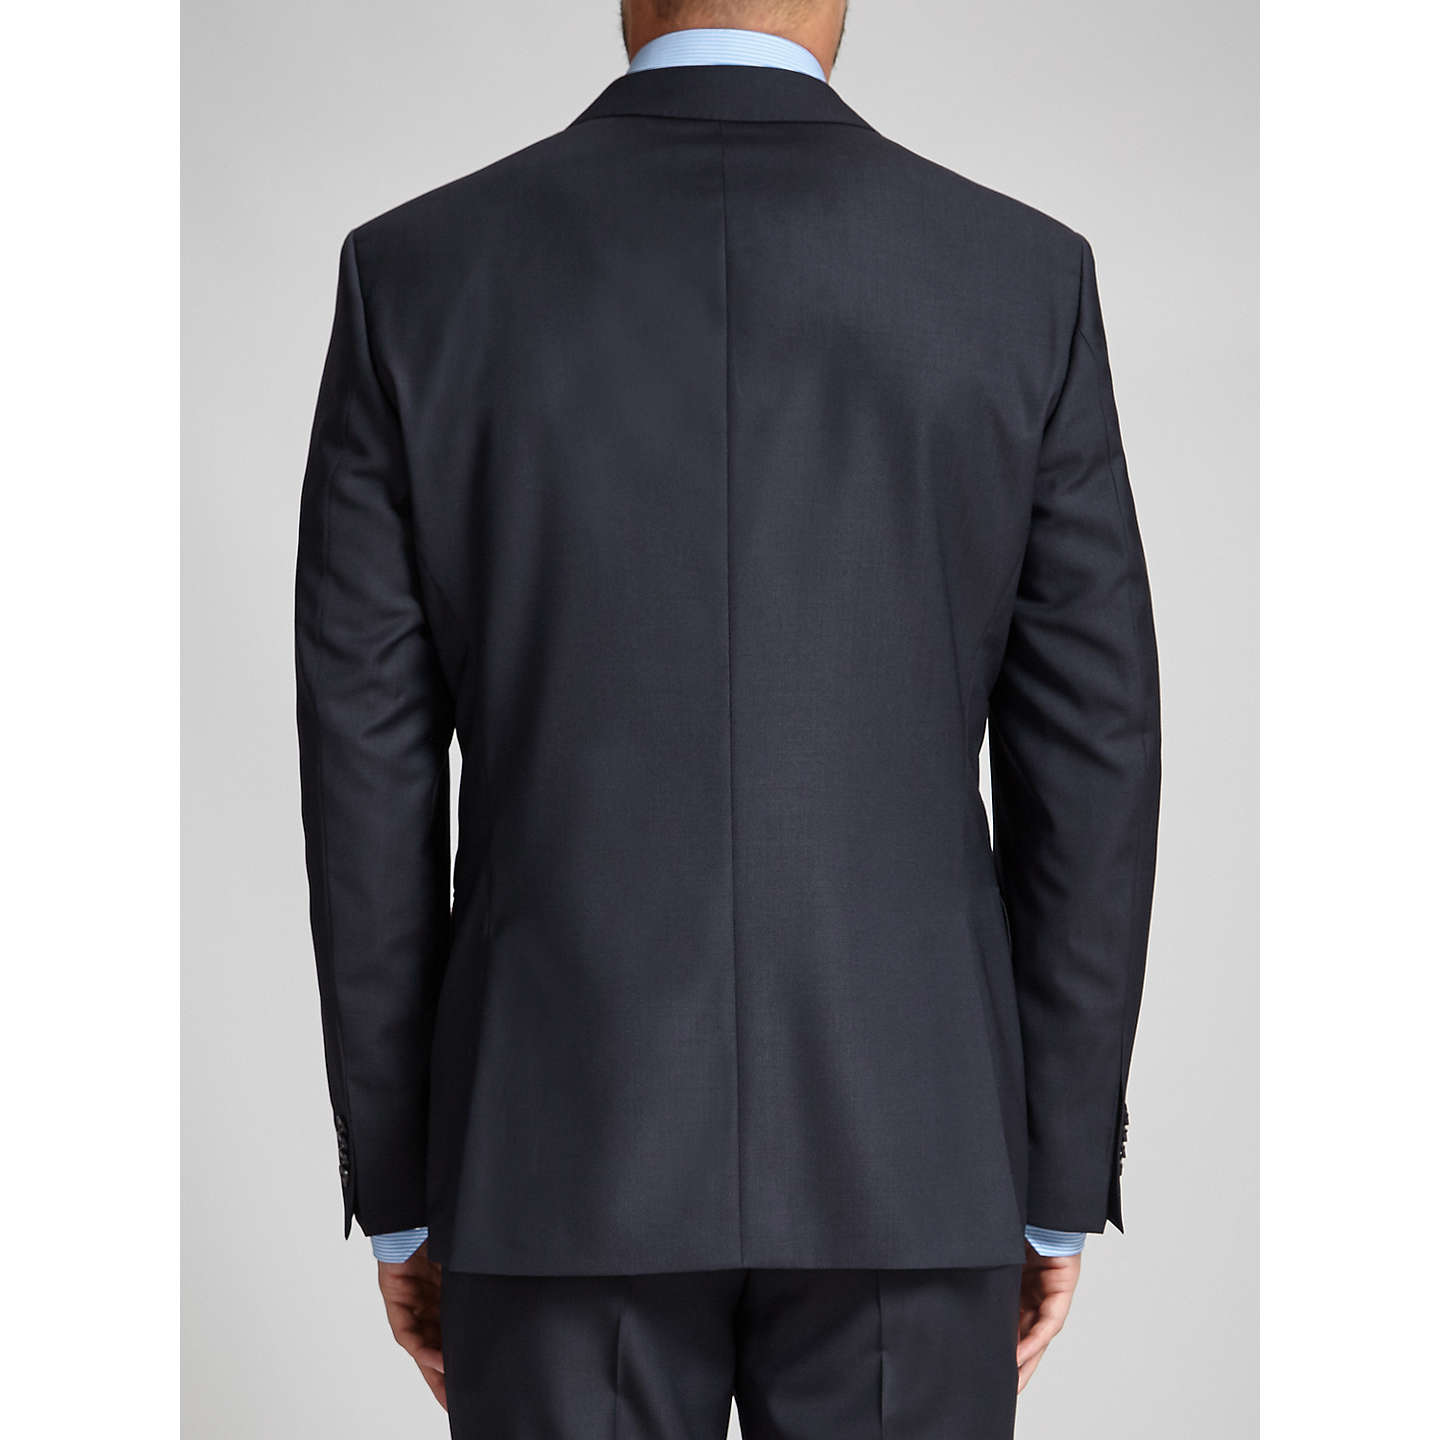 BuyHUGO James Textured Wool Regular Fit Suit Jacket, Dark Blue, 36R Online at johnlewis.com